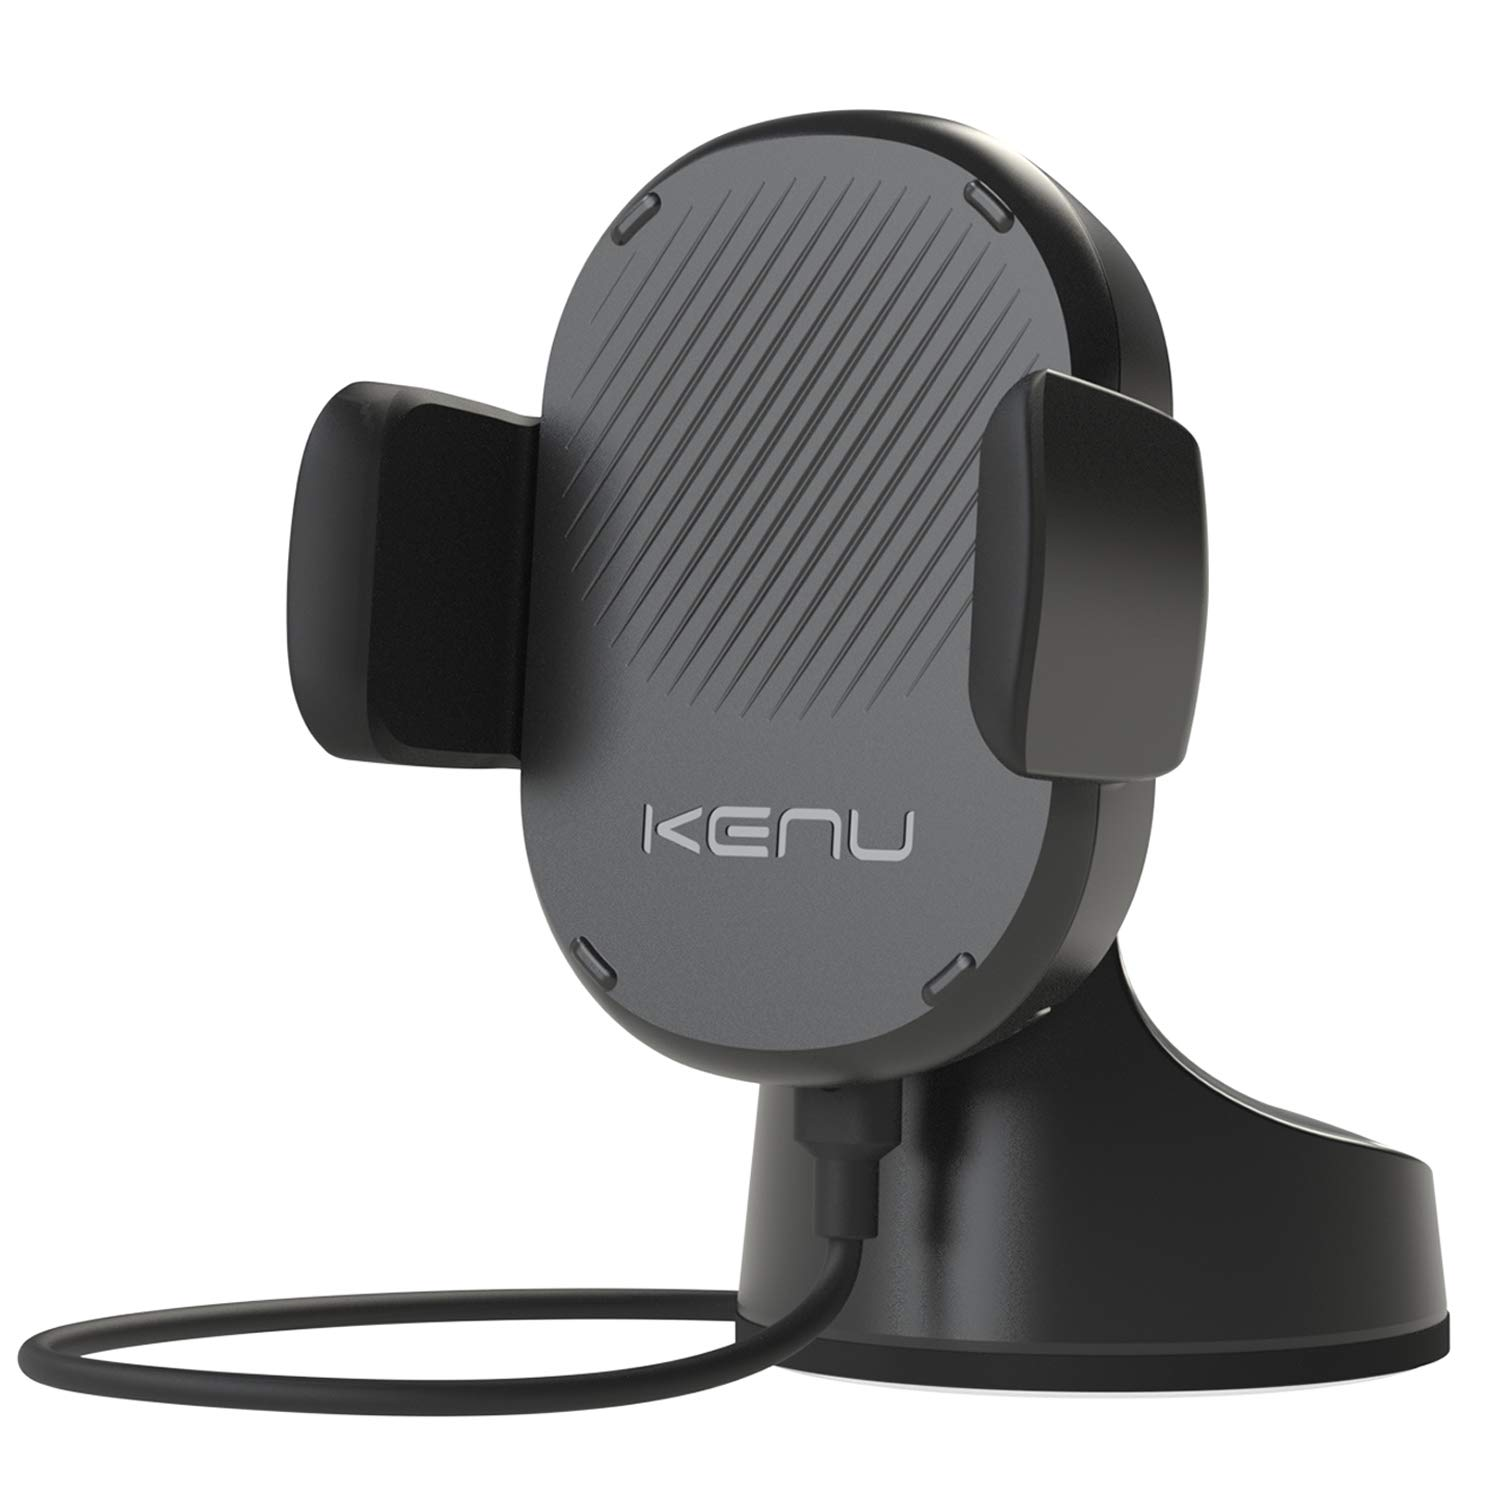 Kenu Airbase Wireless | Qi Fast-Charging Dashboard Car Mount | Wireless Car Charger for iPhone 11 Pro Max/11Pro/11, iPhone Xs Max/Xs/XR/X, iPhone 8 Plus/8, Pixel 3XL/3, Samsung Galaxy | Black by Kenu